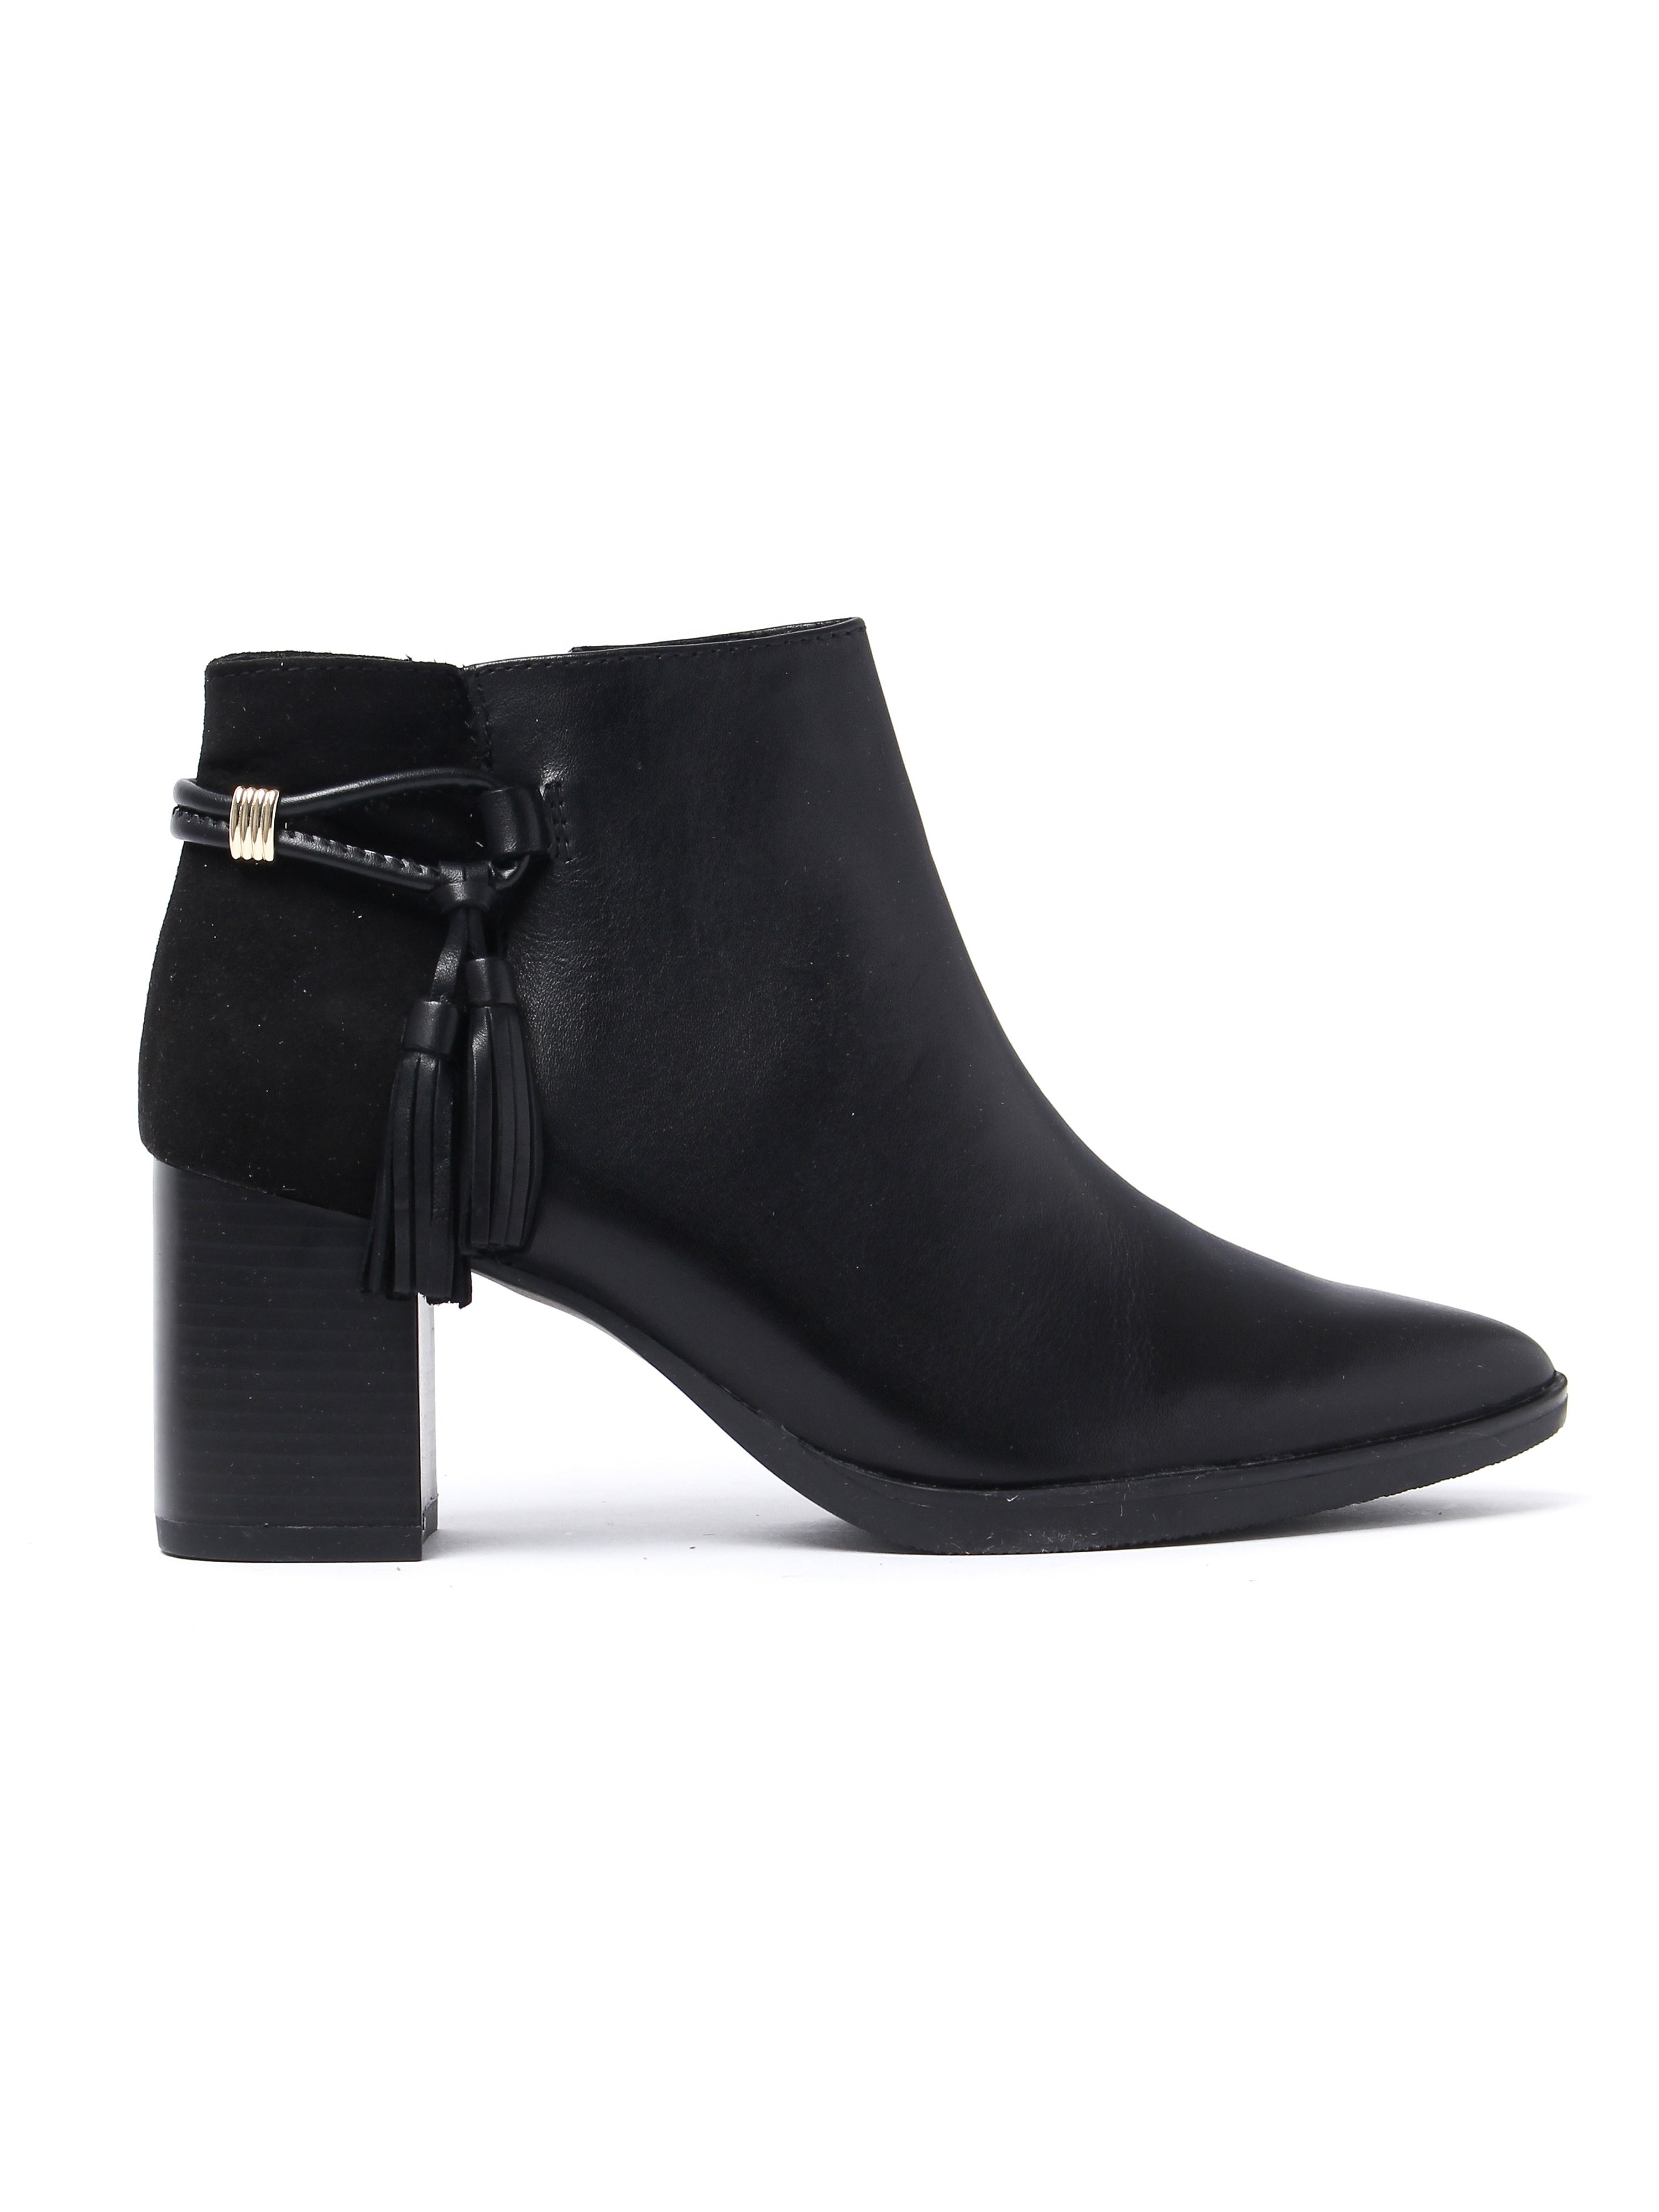 Caprice Women's Heeled Ankle Boots - Black Leather